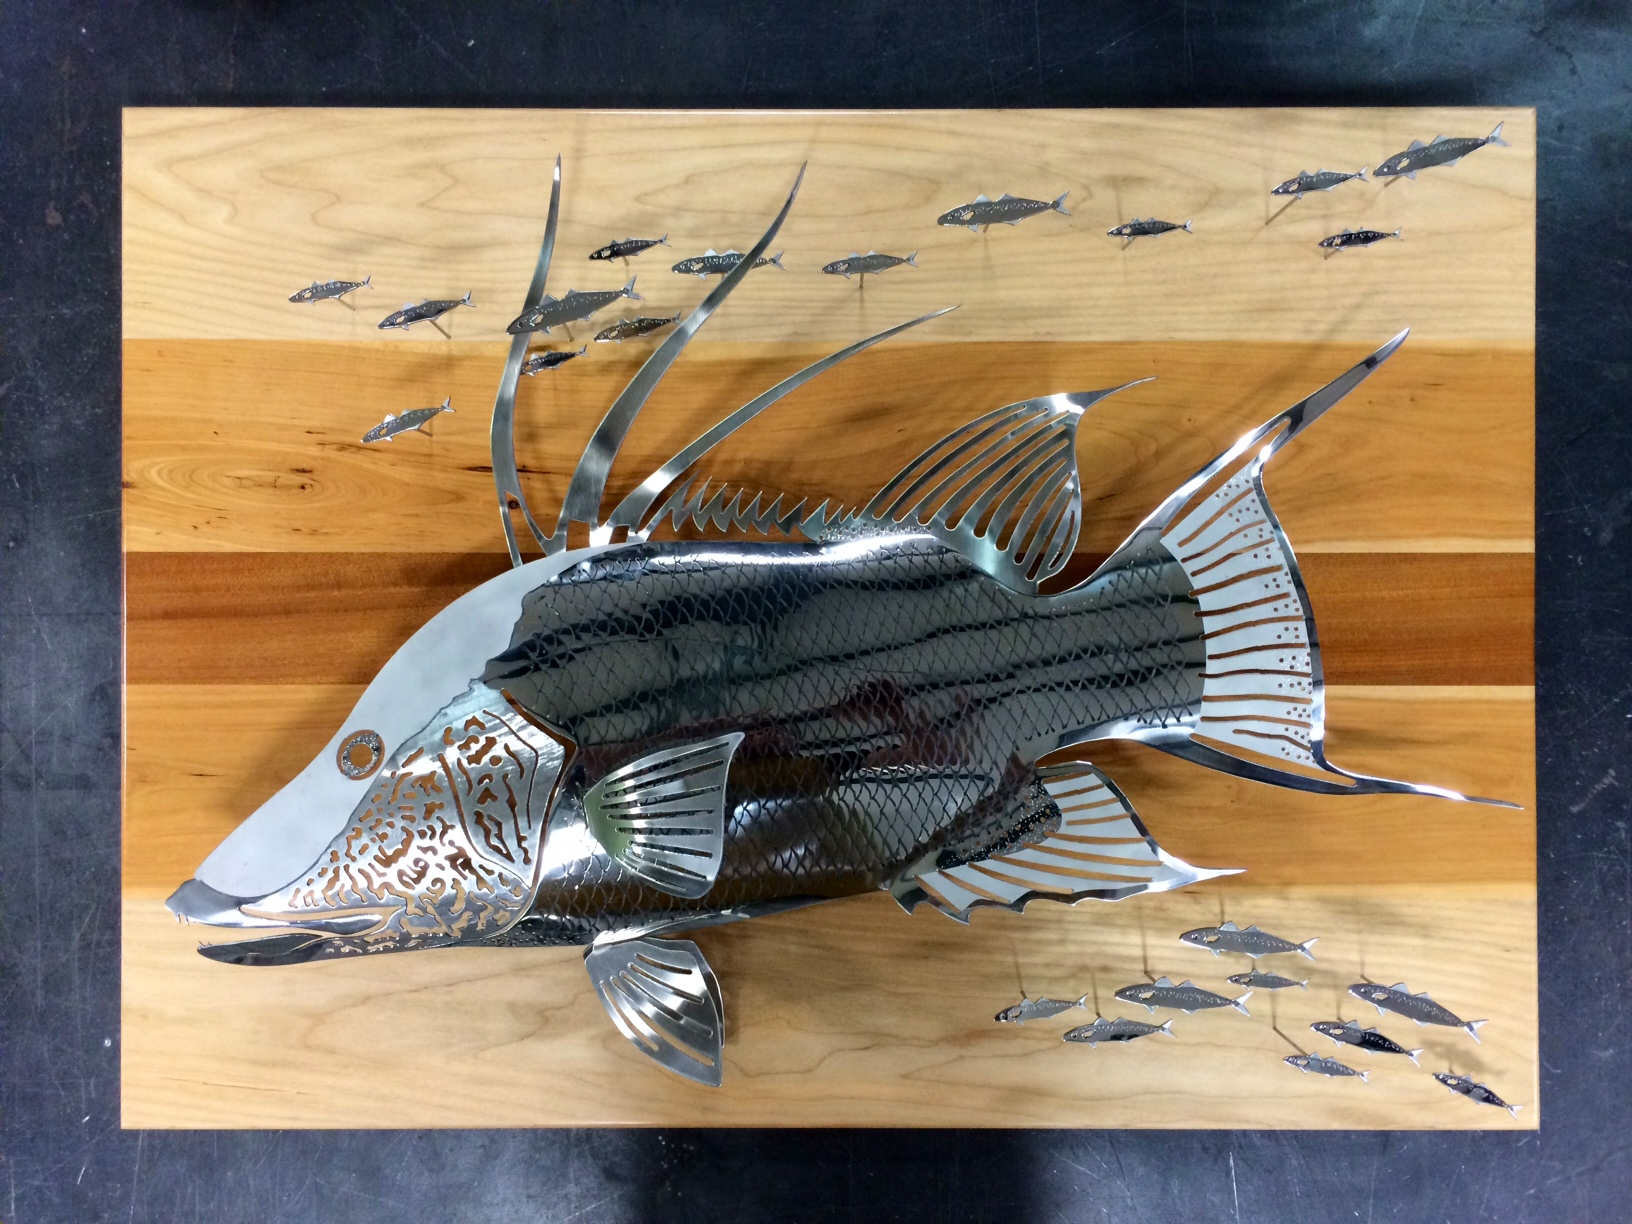 Stainless Hog Snapper Wood Sculpture 4